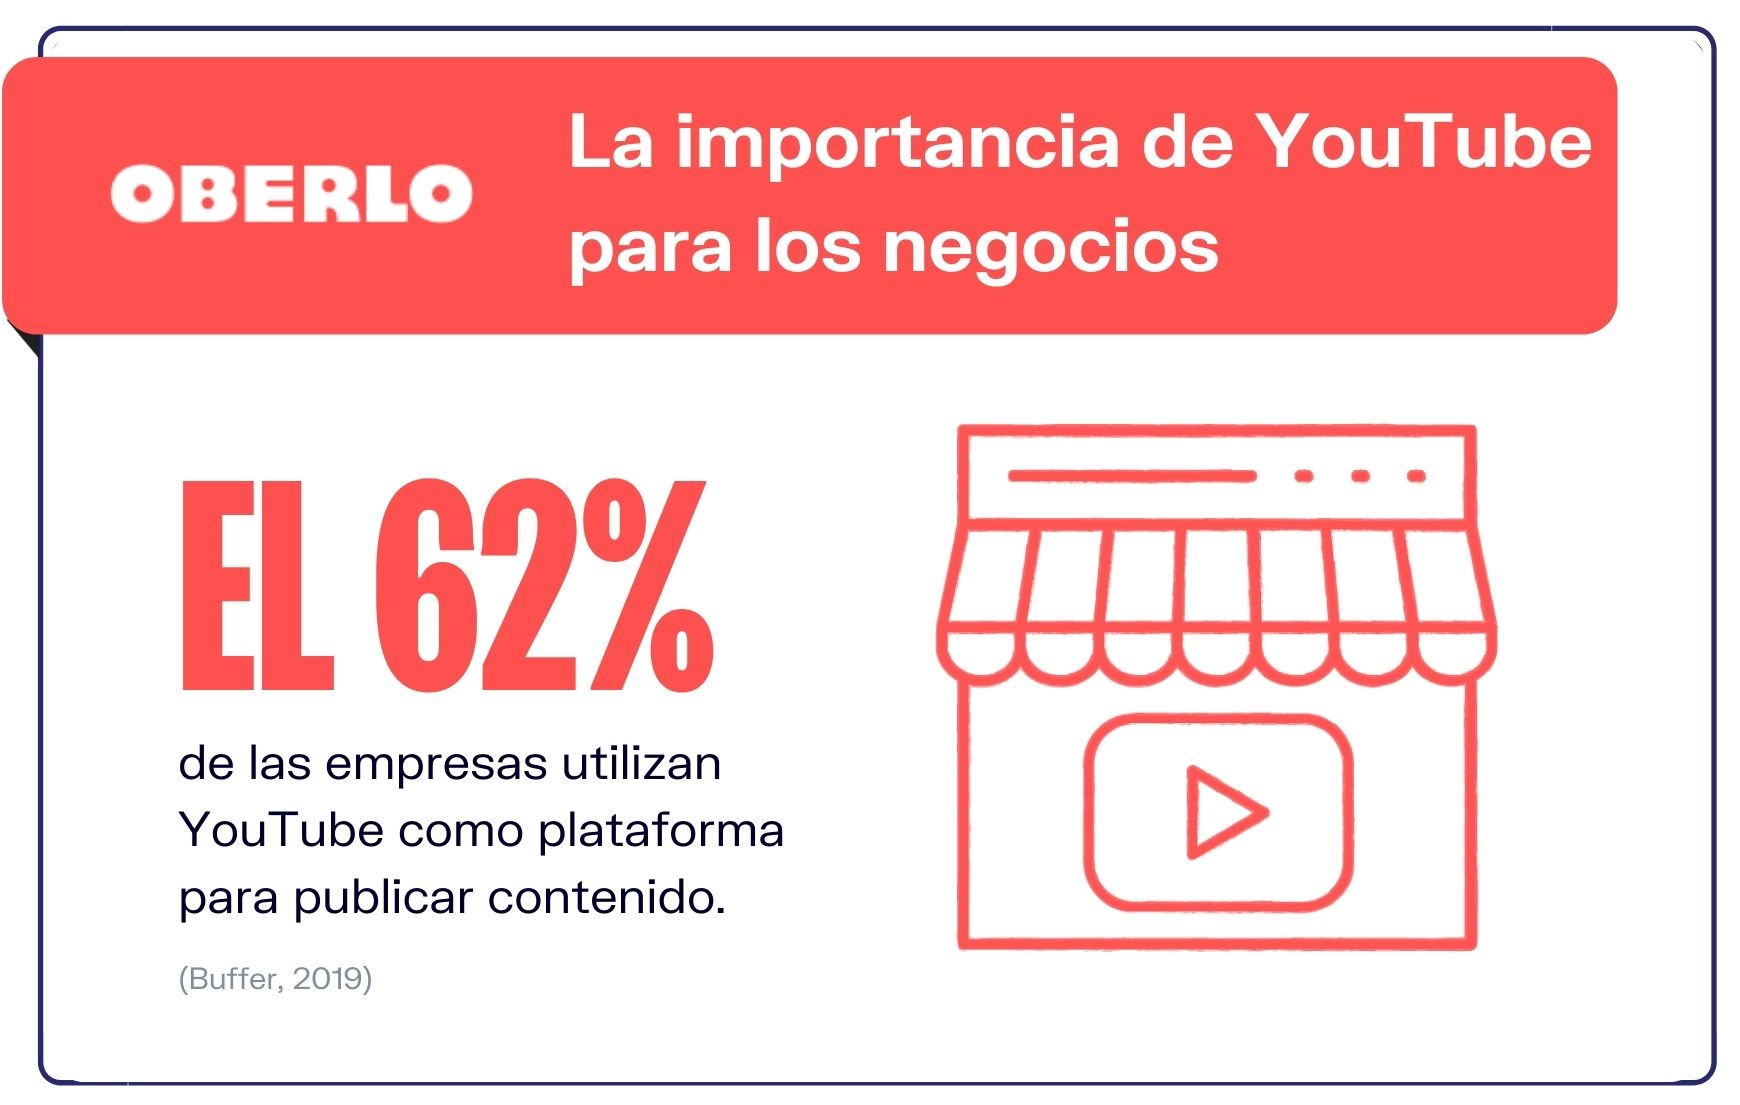 YouTube-Estadisticas-Importancia-YouTube-para-empresas